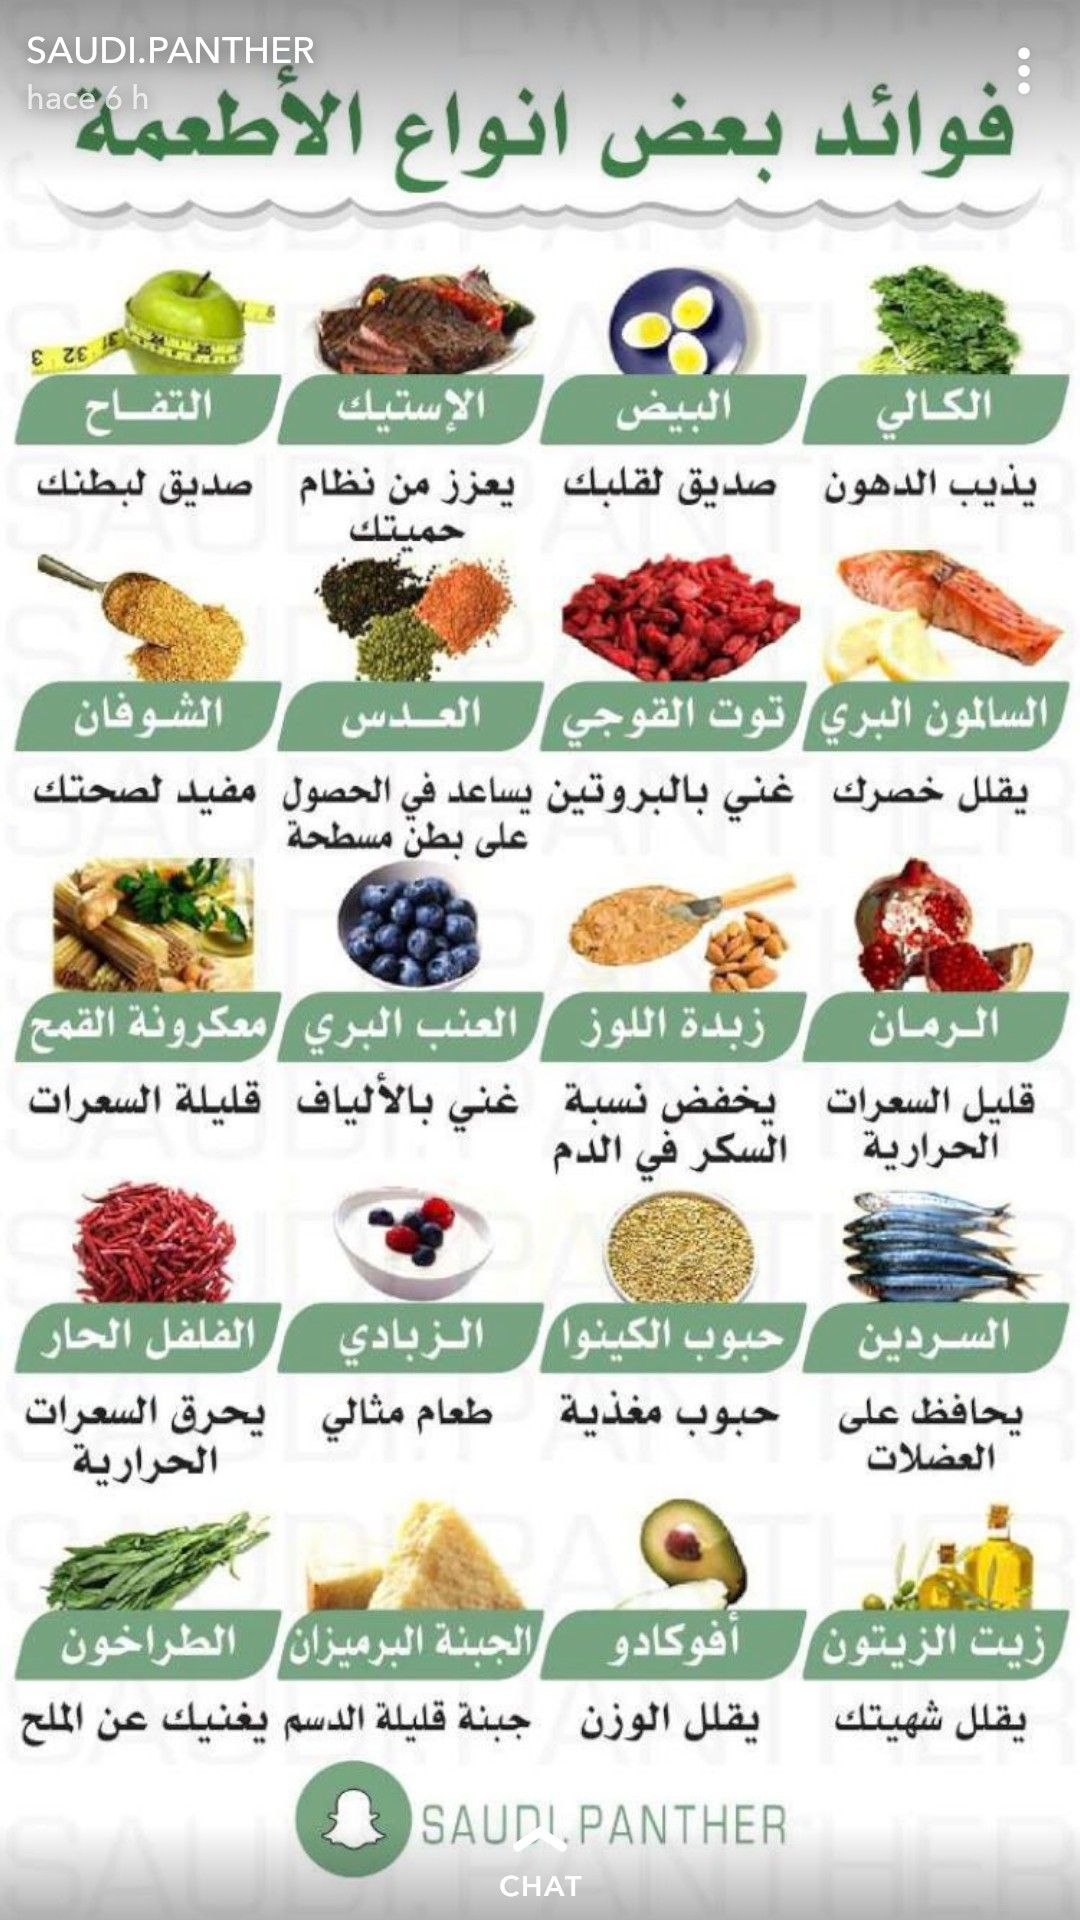 Pin By O Elbahti3007 On Saudi Panther Health Facts Food Health Fitness Food Health Fitness Nutrition